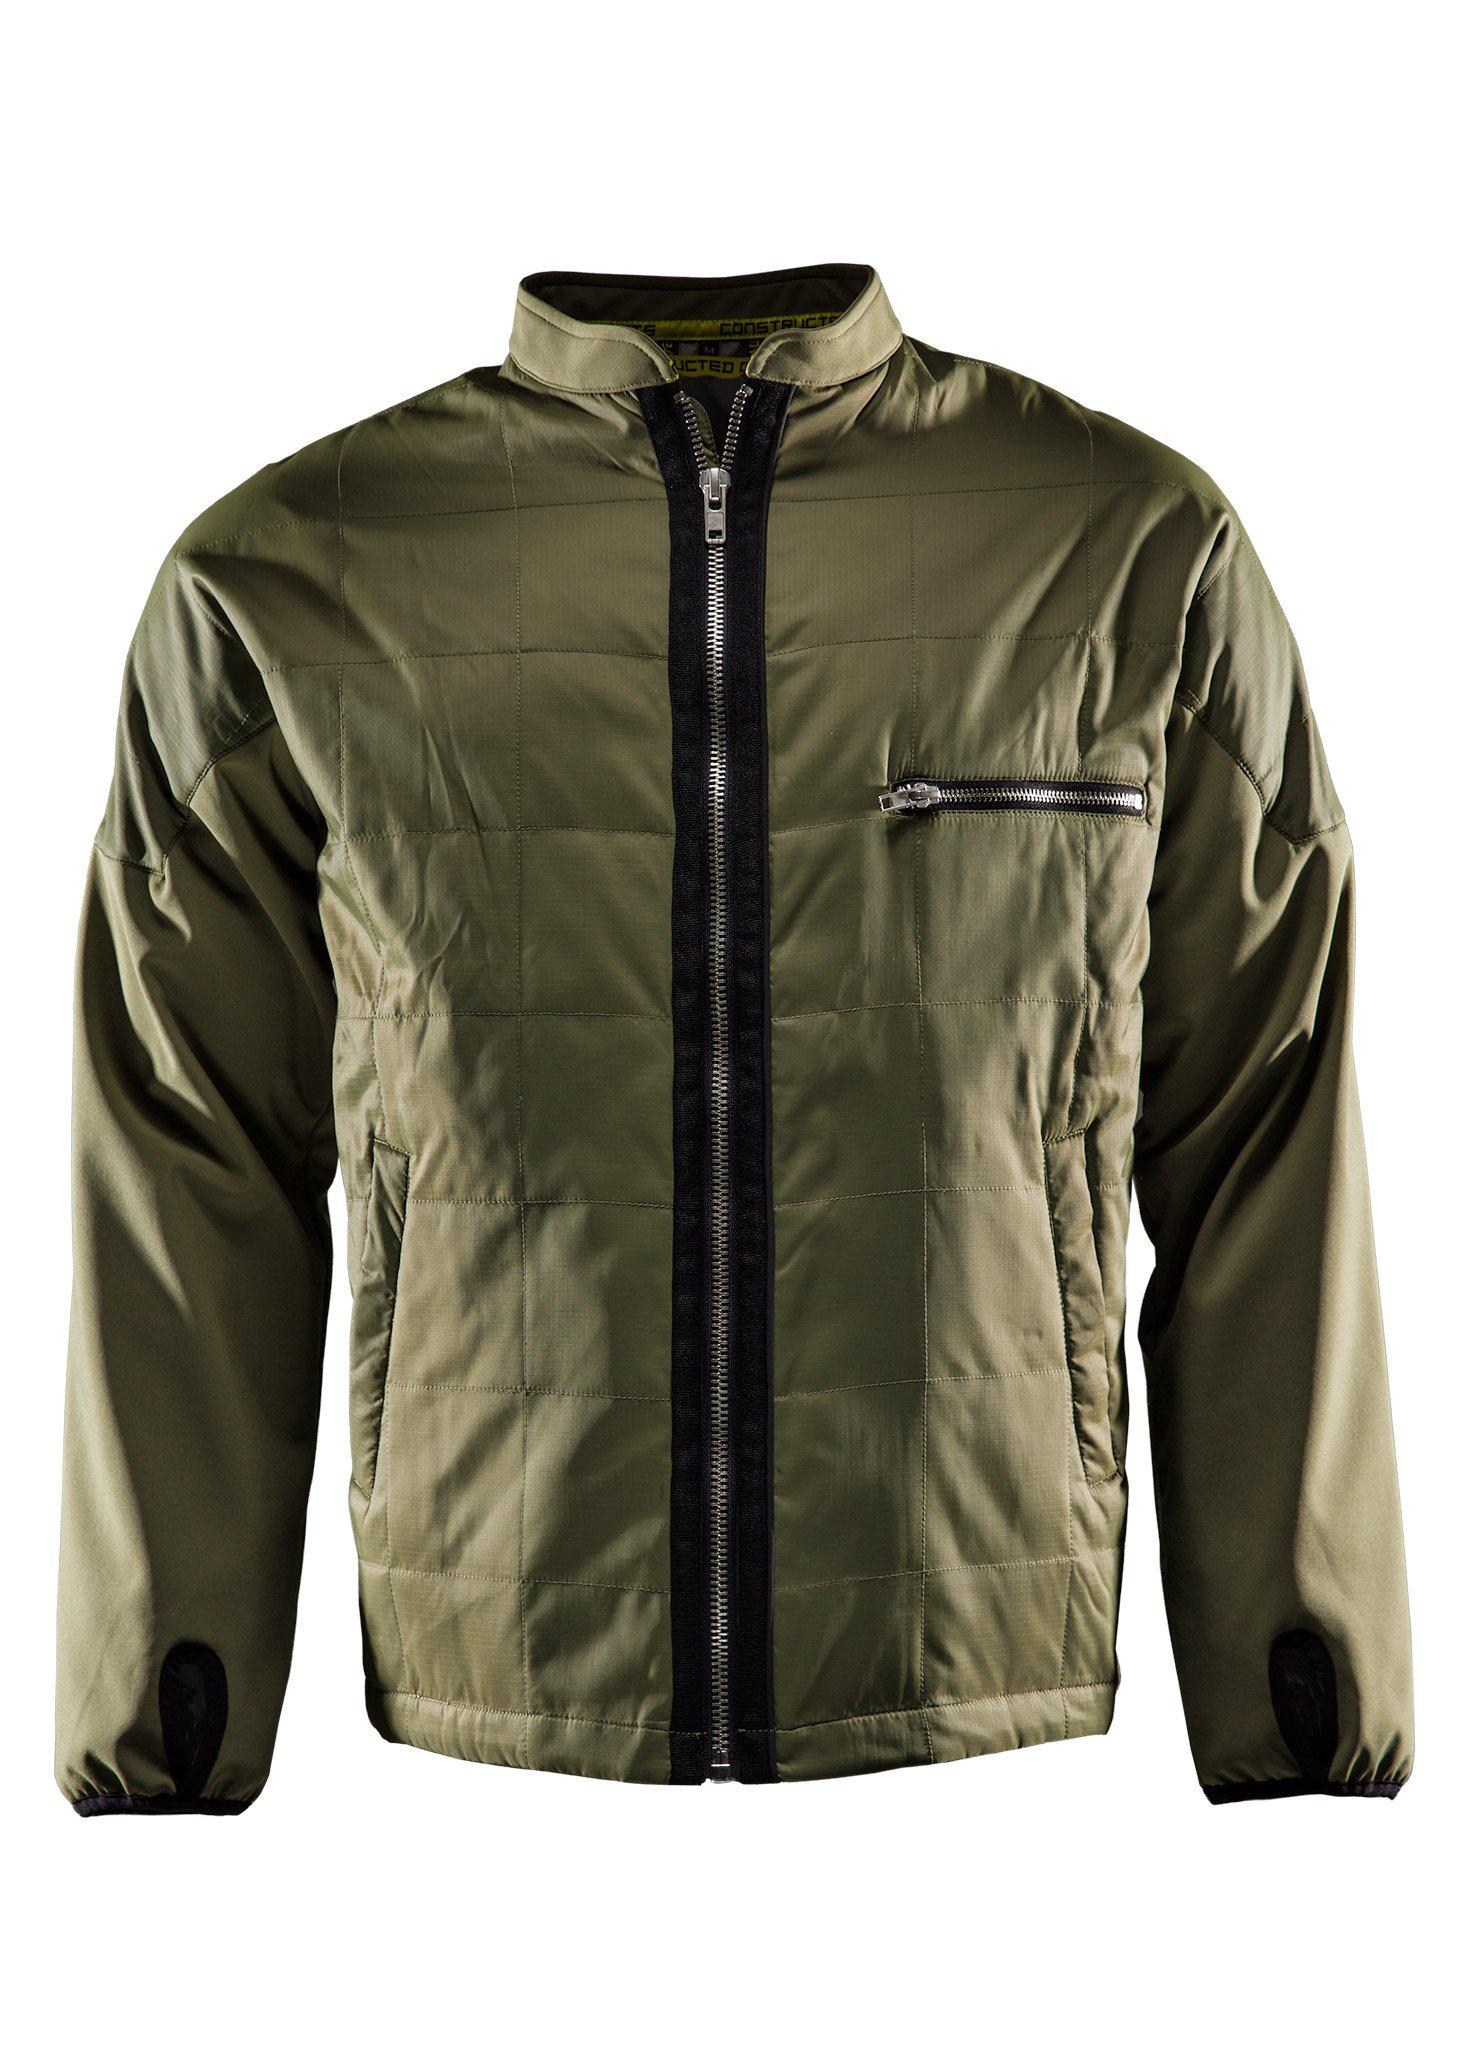 Monitor Lightweight jacket, Quilted jacket, Burnt olive green